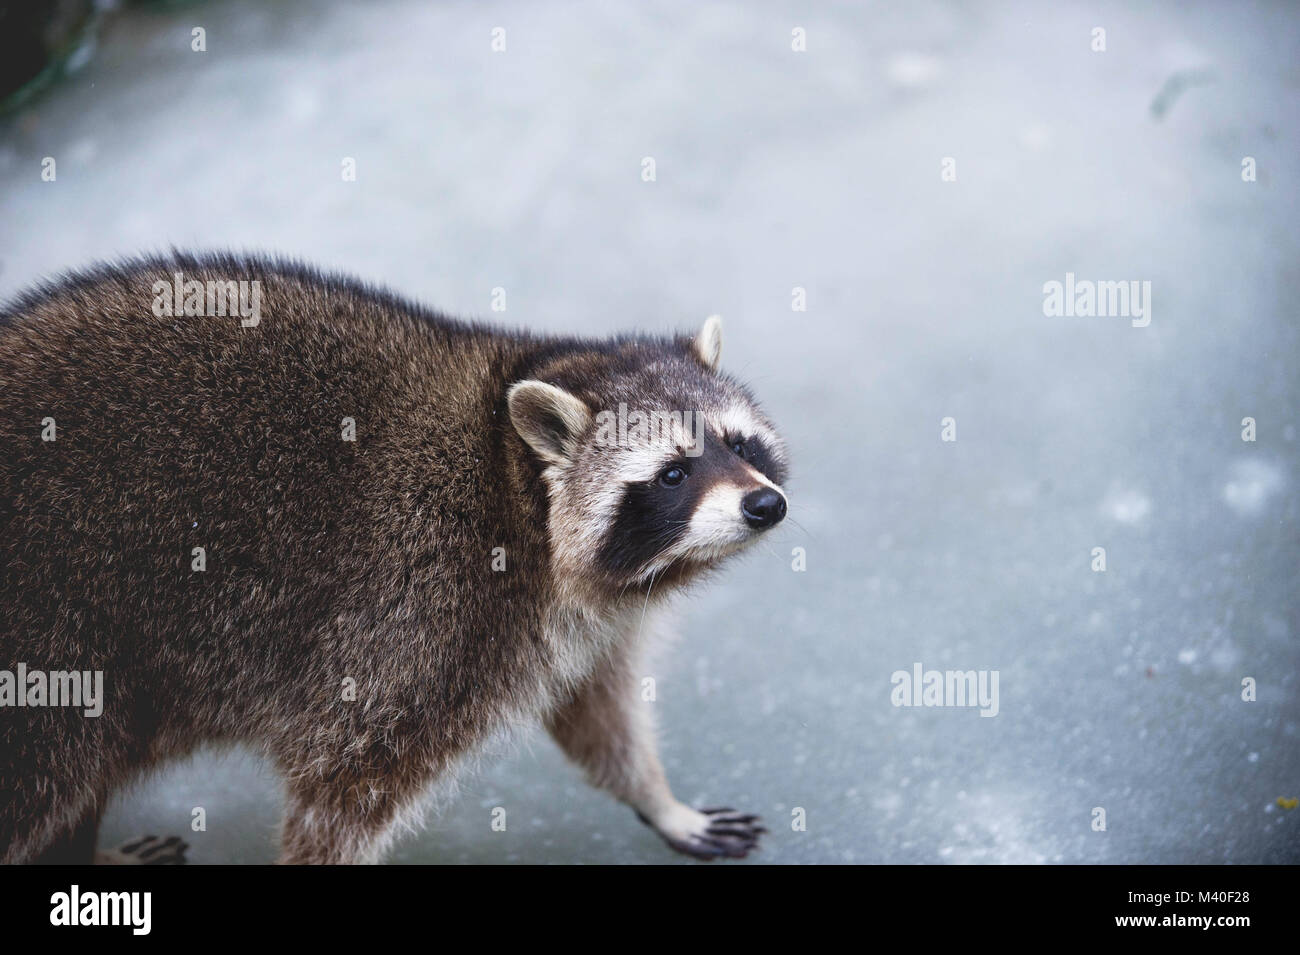 Low depth of field, Sharp Eyes, Blurred Background - Stock Image